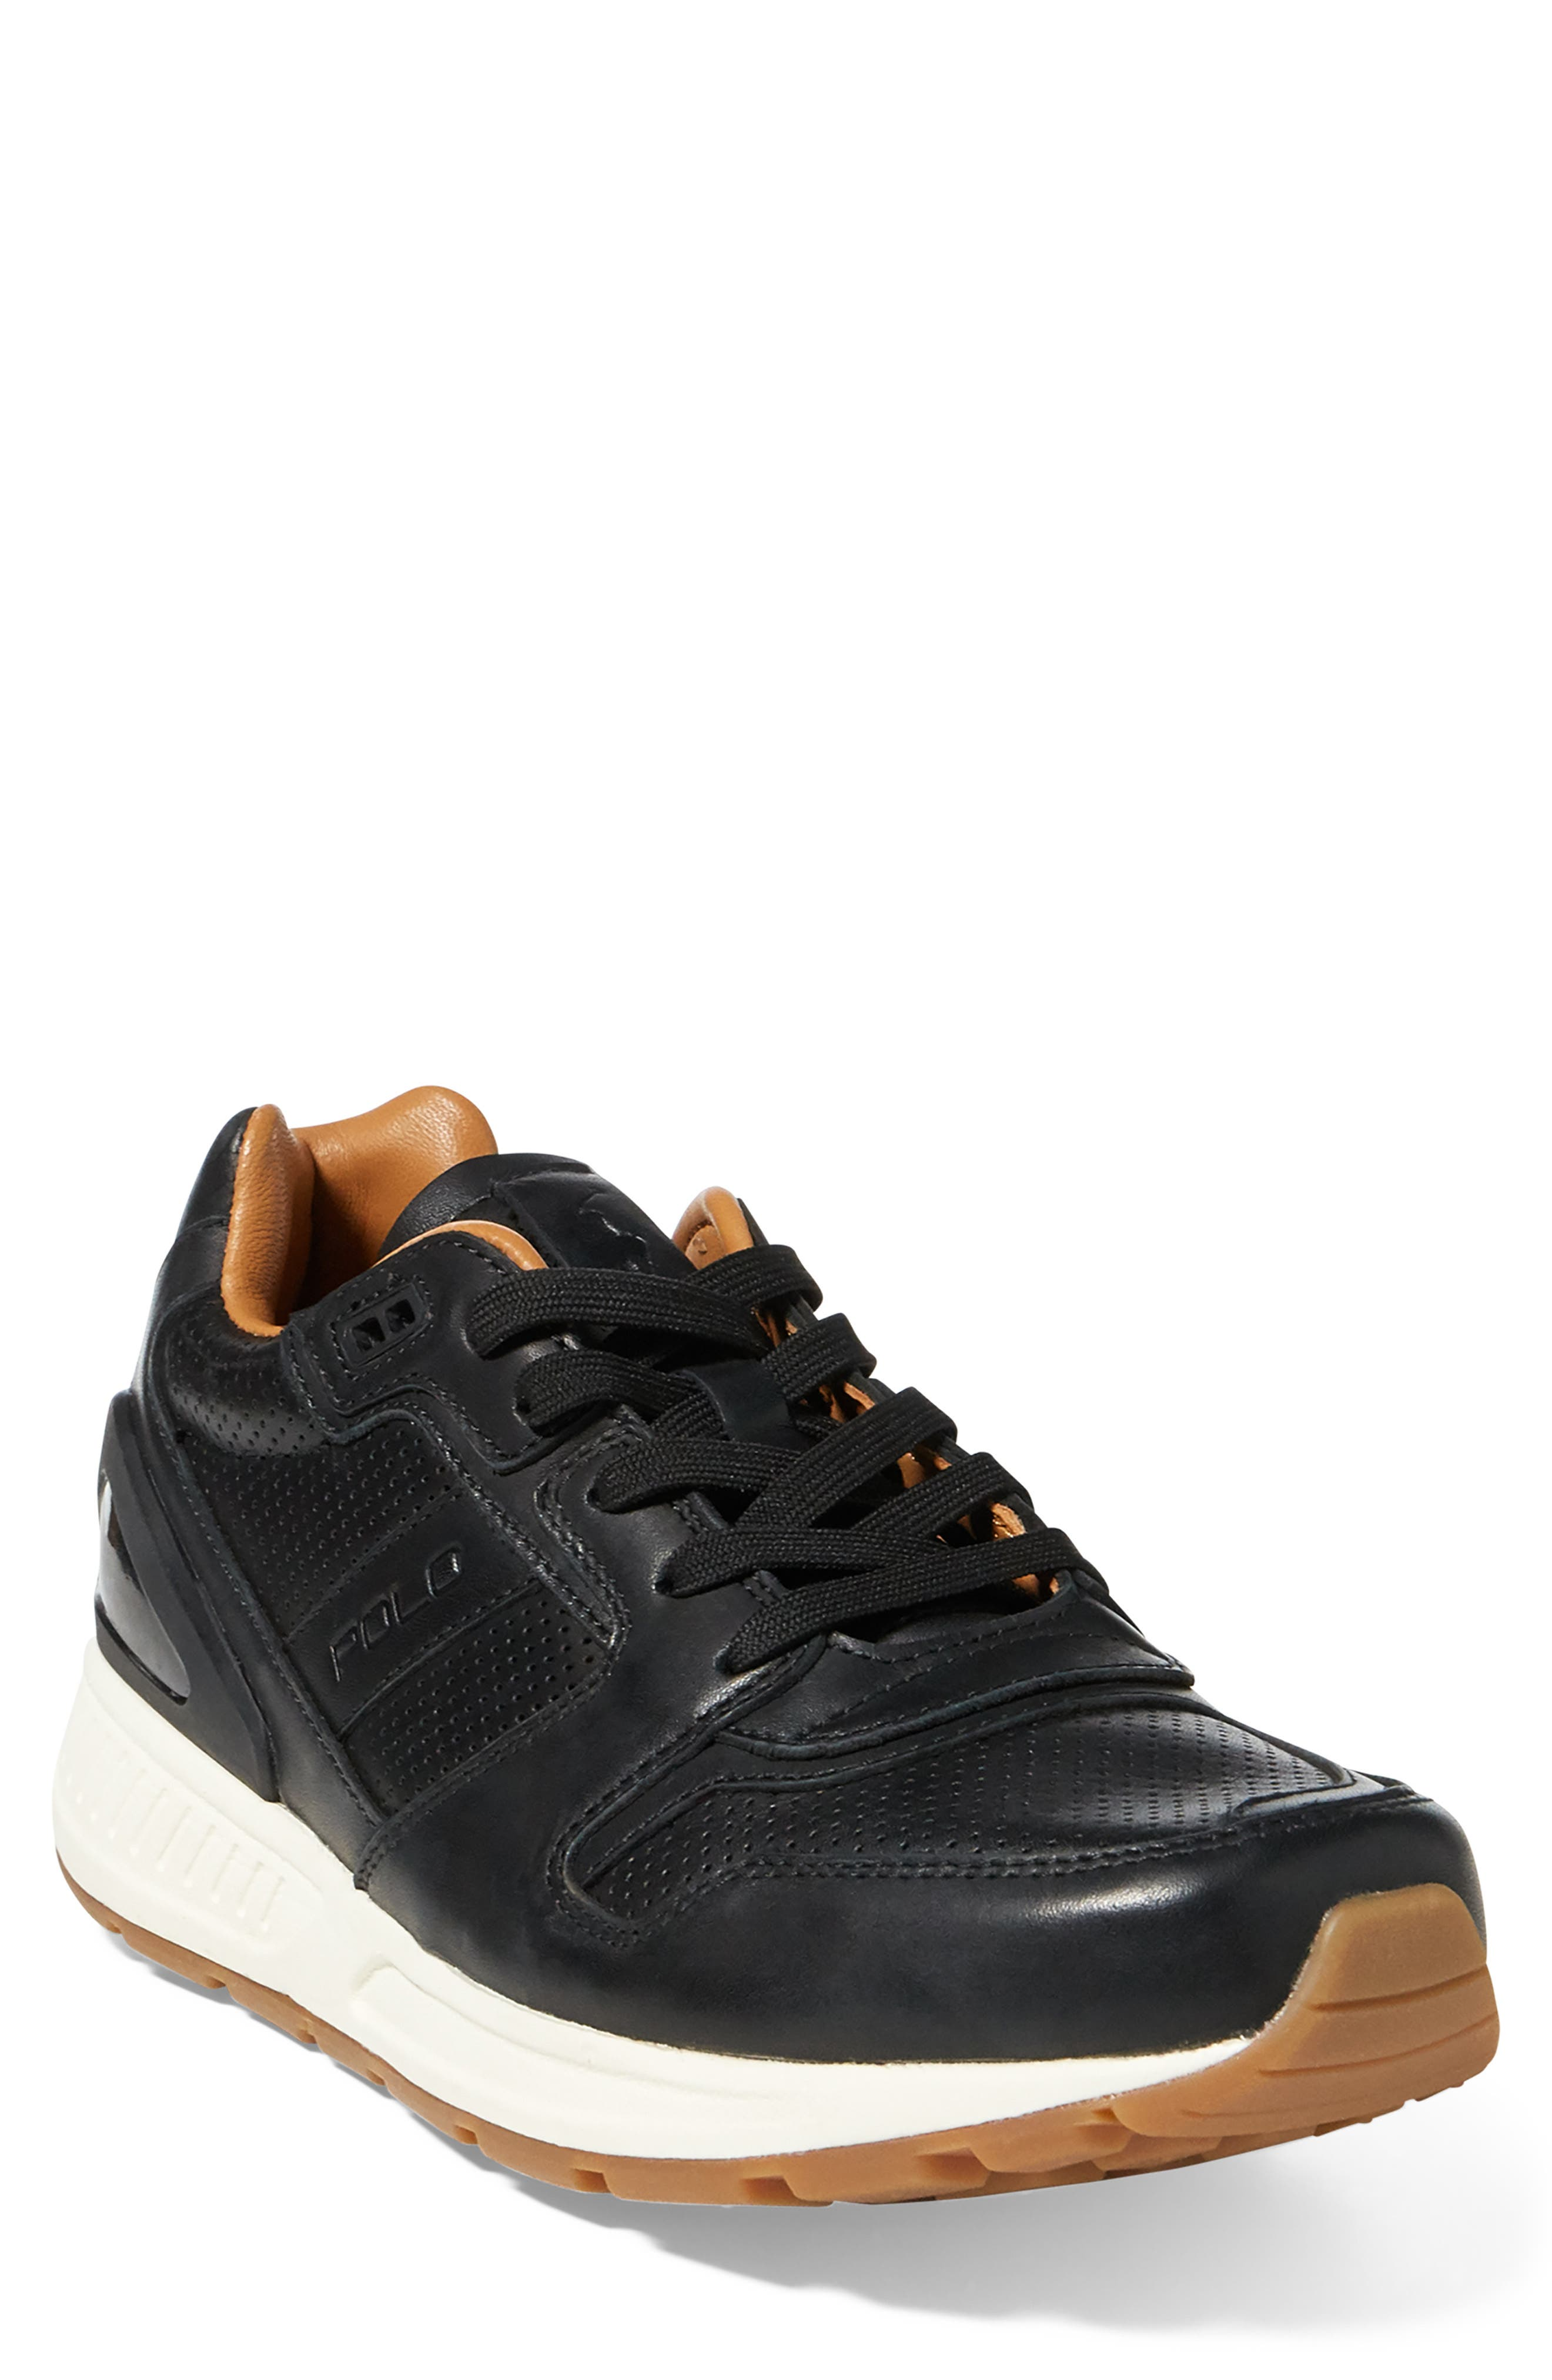 Train 100 Sneaker,                         Main,                         color, BLACK LEATHER